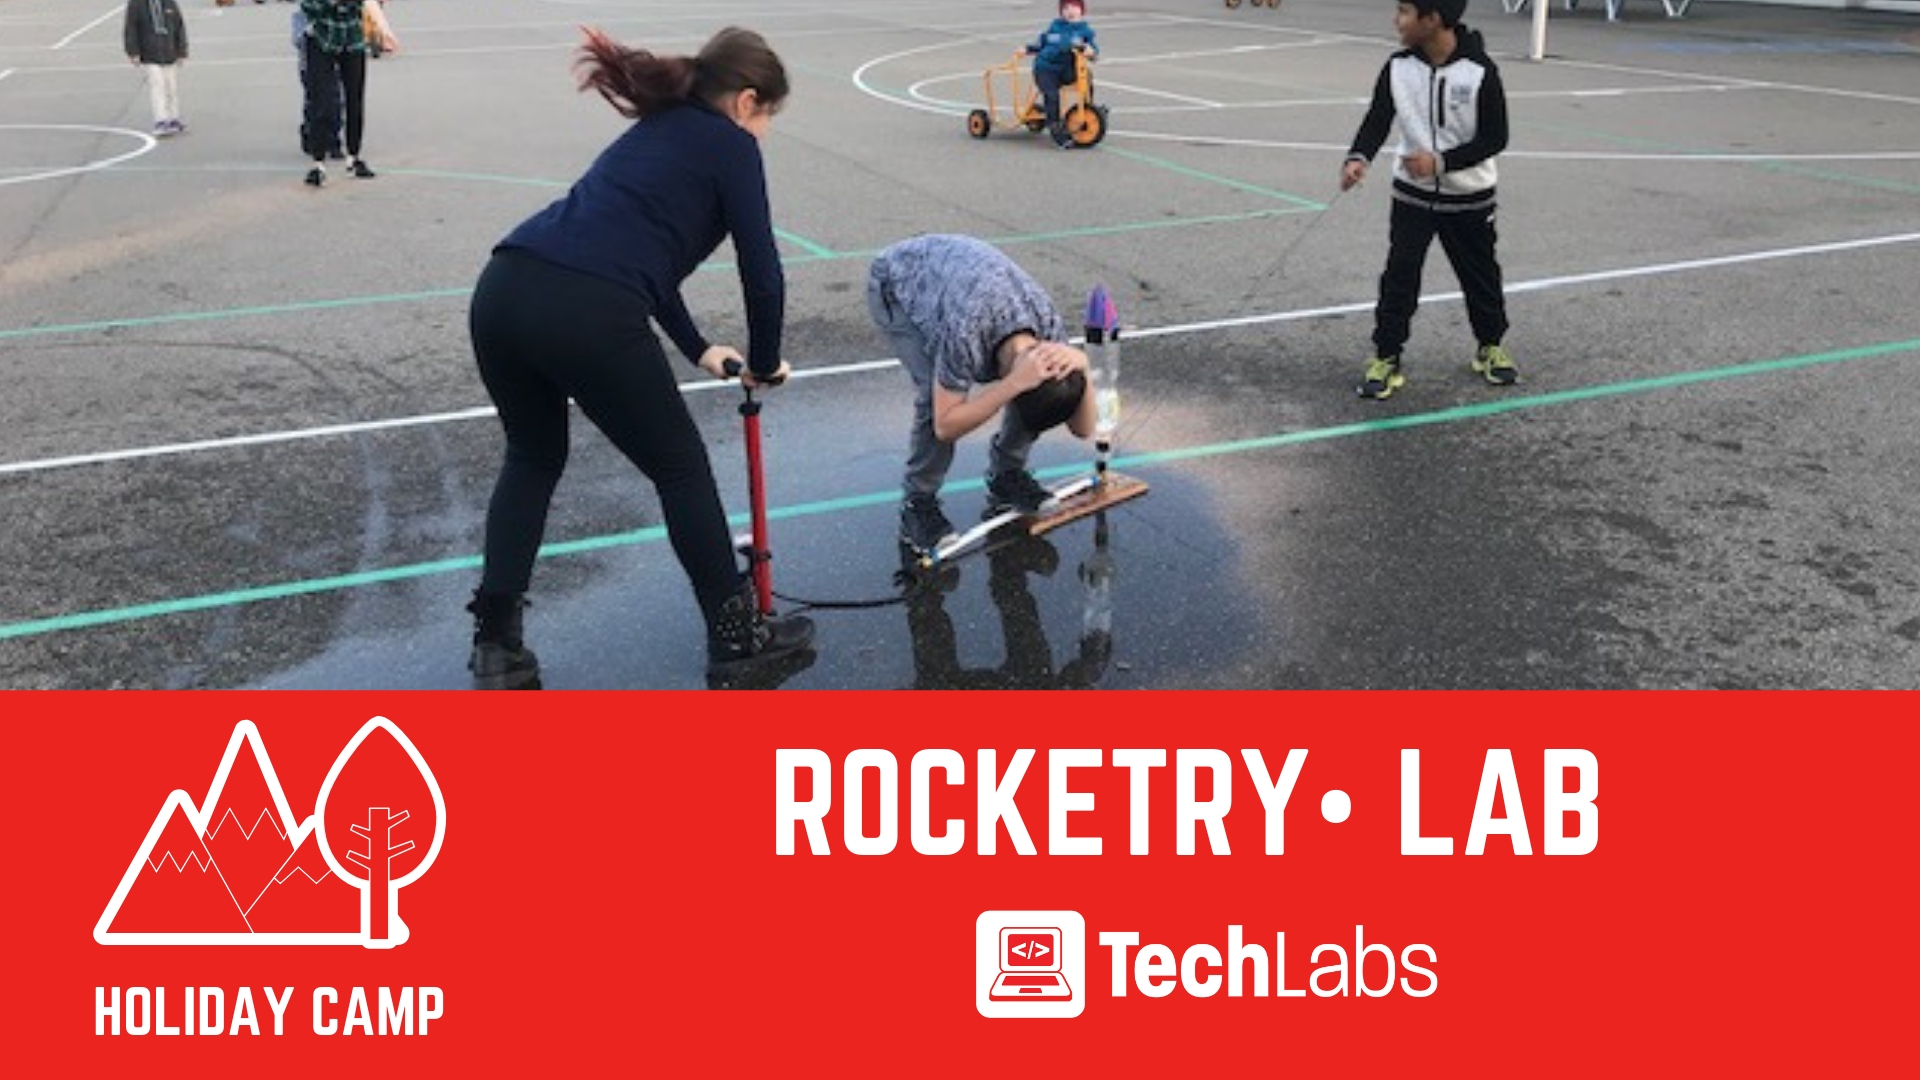 TechLabs | Camp | Rocketry Lab